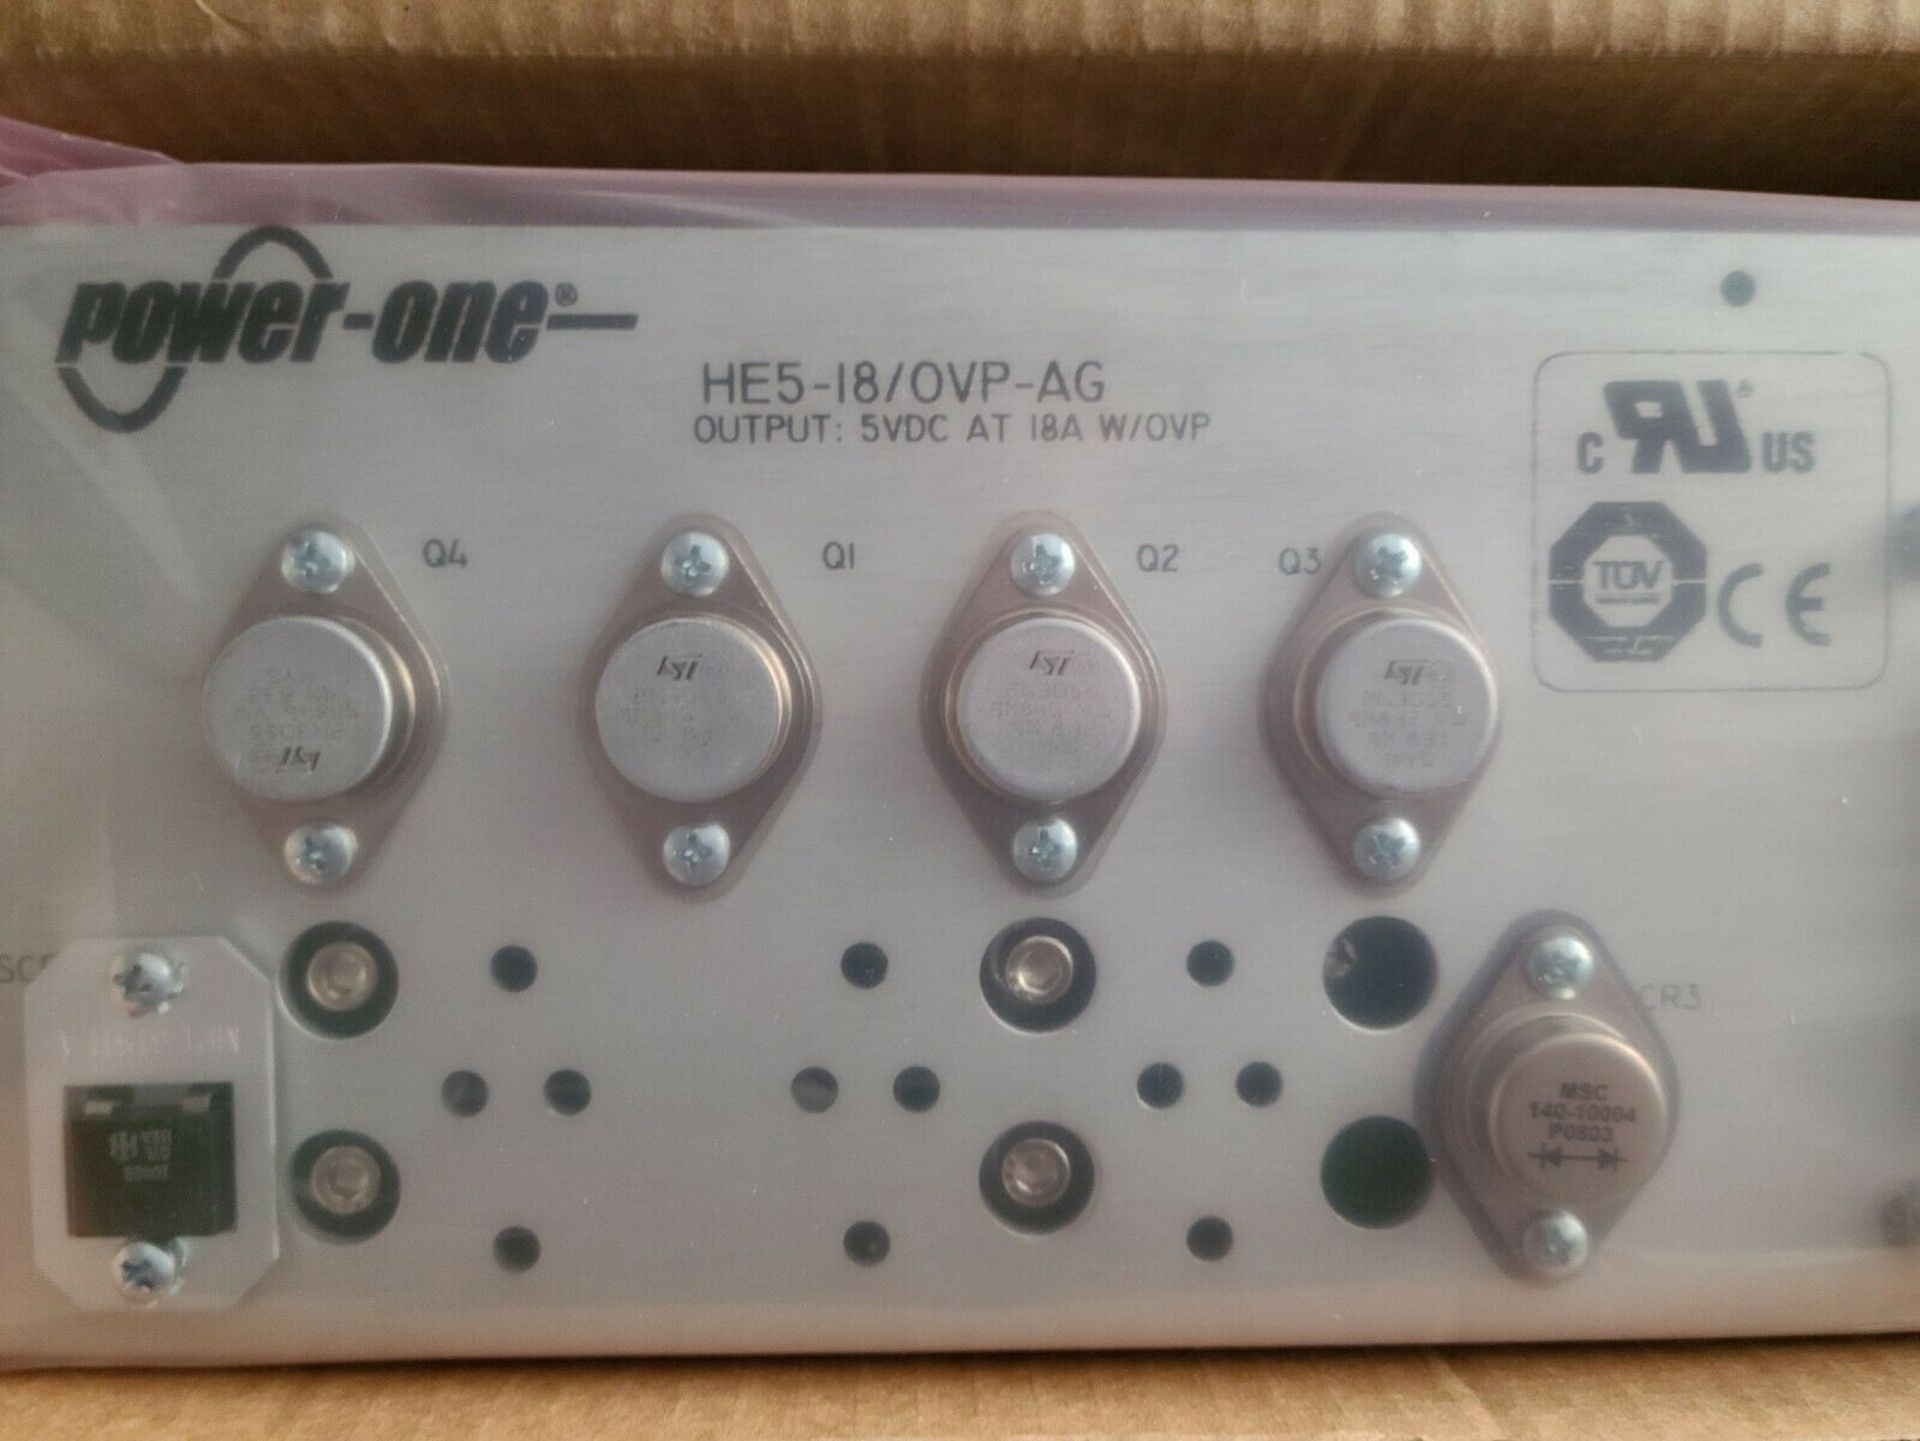 NEW POWER ONE 5VDC 18A AUTOMATION POWER SUPPLY - Image 4 of 5